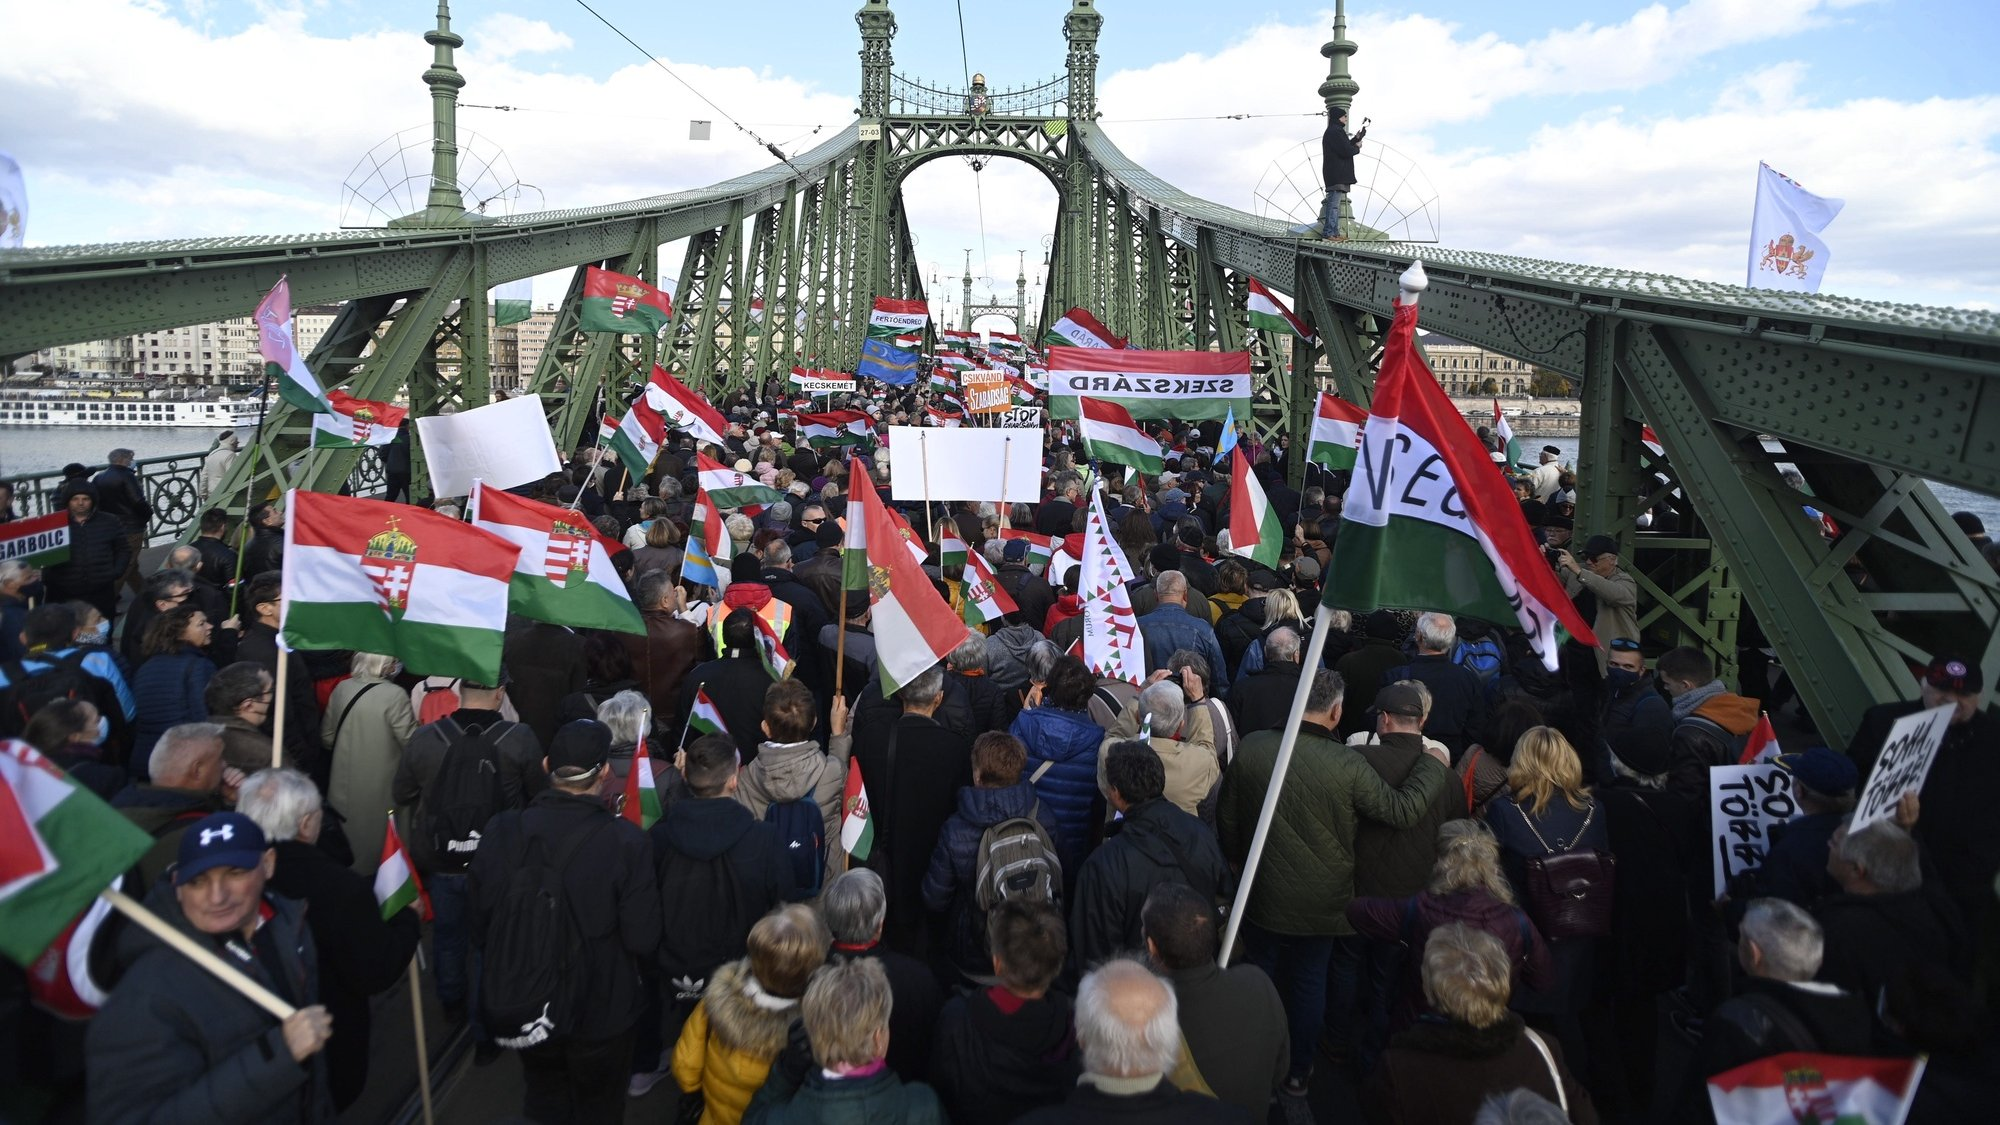 epa09541171 Participants of the Peace March wave flags during the demonstration marking the 65th anniversary of the Hungarian revolution and war of  independence against communist rule and the Soviet Union in 1956 on the Szabadsag (Freedom) Bridge in Budapest, Hungary, 23 October 2021. The Peace March was organized by the pro-government Civic Solidarity Forum Foundation.  EPA/Zoltan Balogh HUNGARY OUT